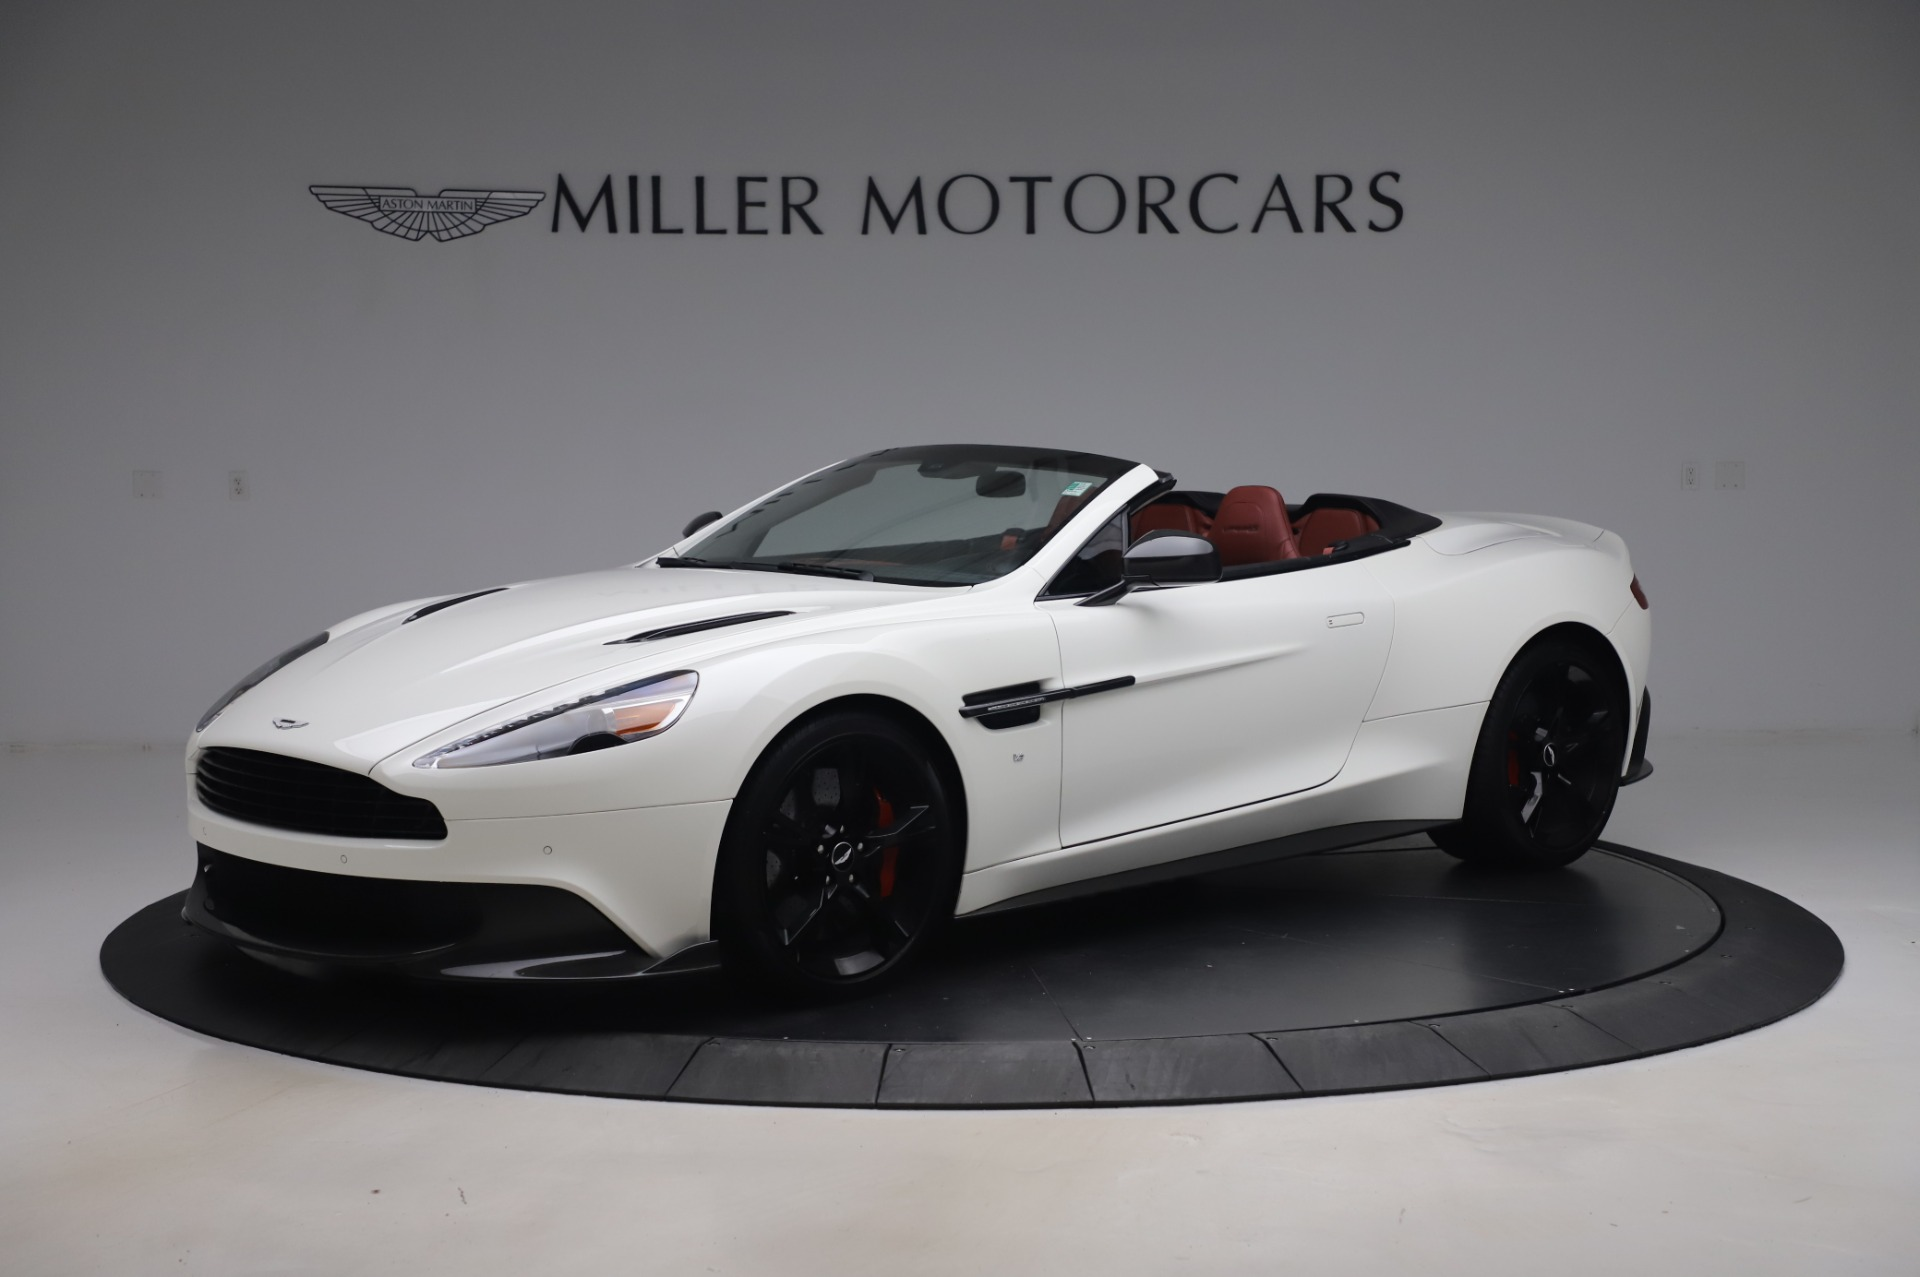 Pre Owned 2018 Aston Martin Vanquish S Volante For Sale 179 900 Aston Martin Of Greenwich Stock 7858